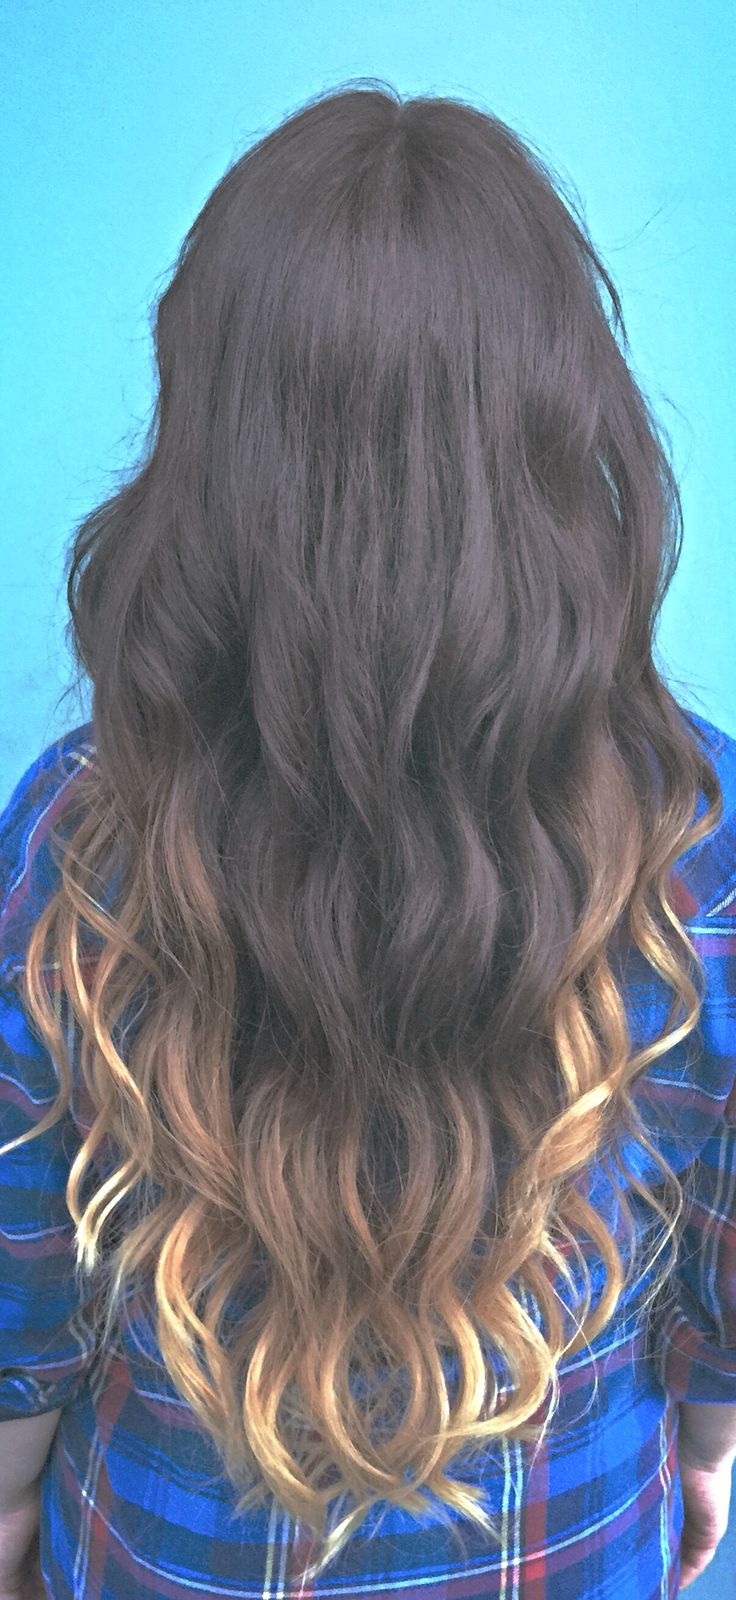 16 best haircut images on pinterest | long hair, gorgeous hair and